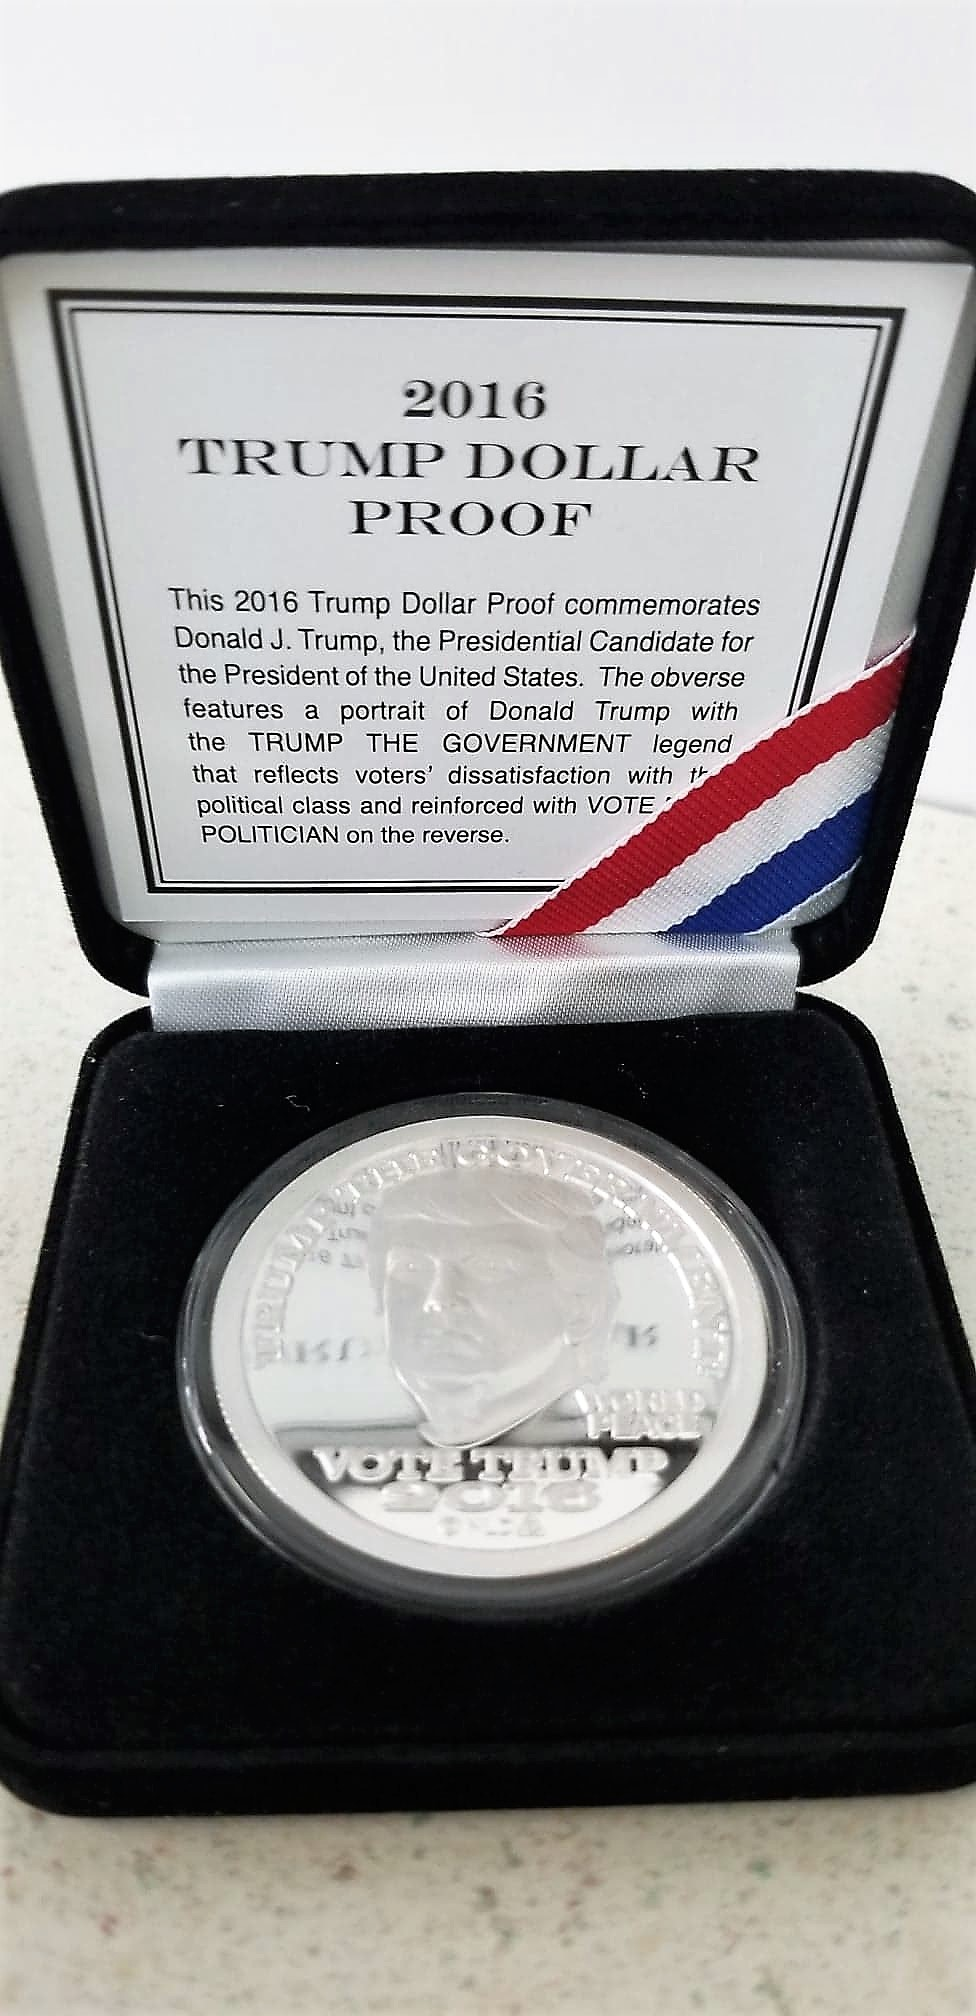 2016 PROOF Silver Trump Vote Dollar